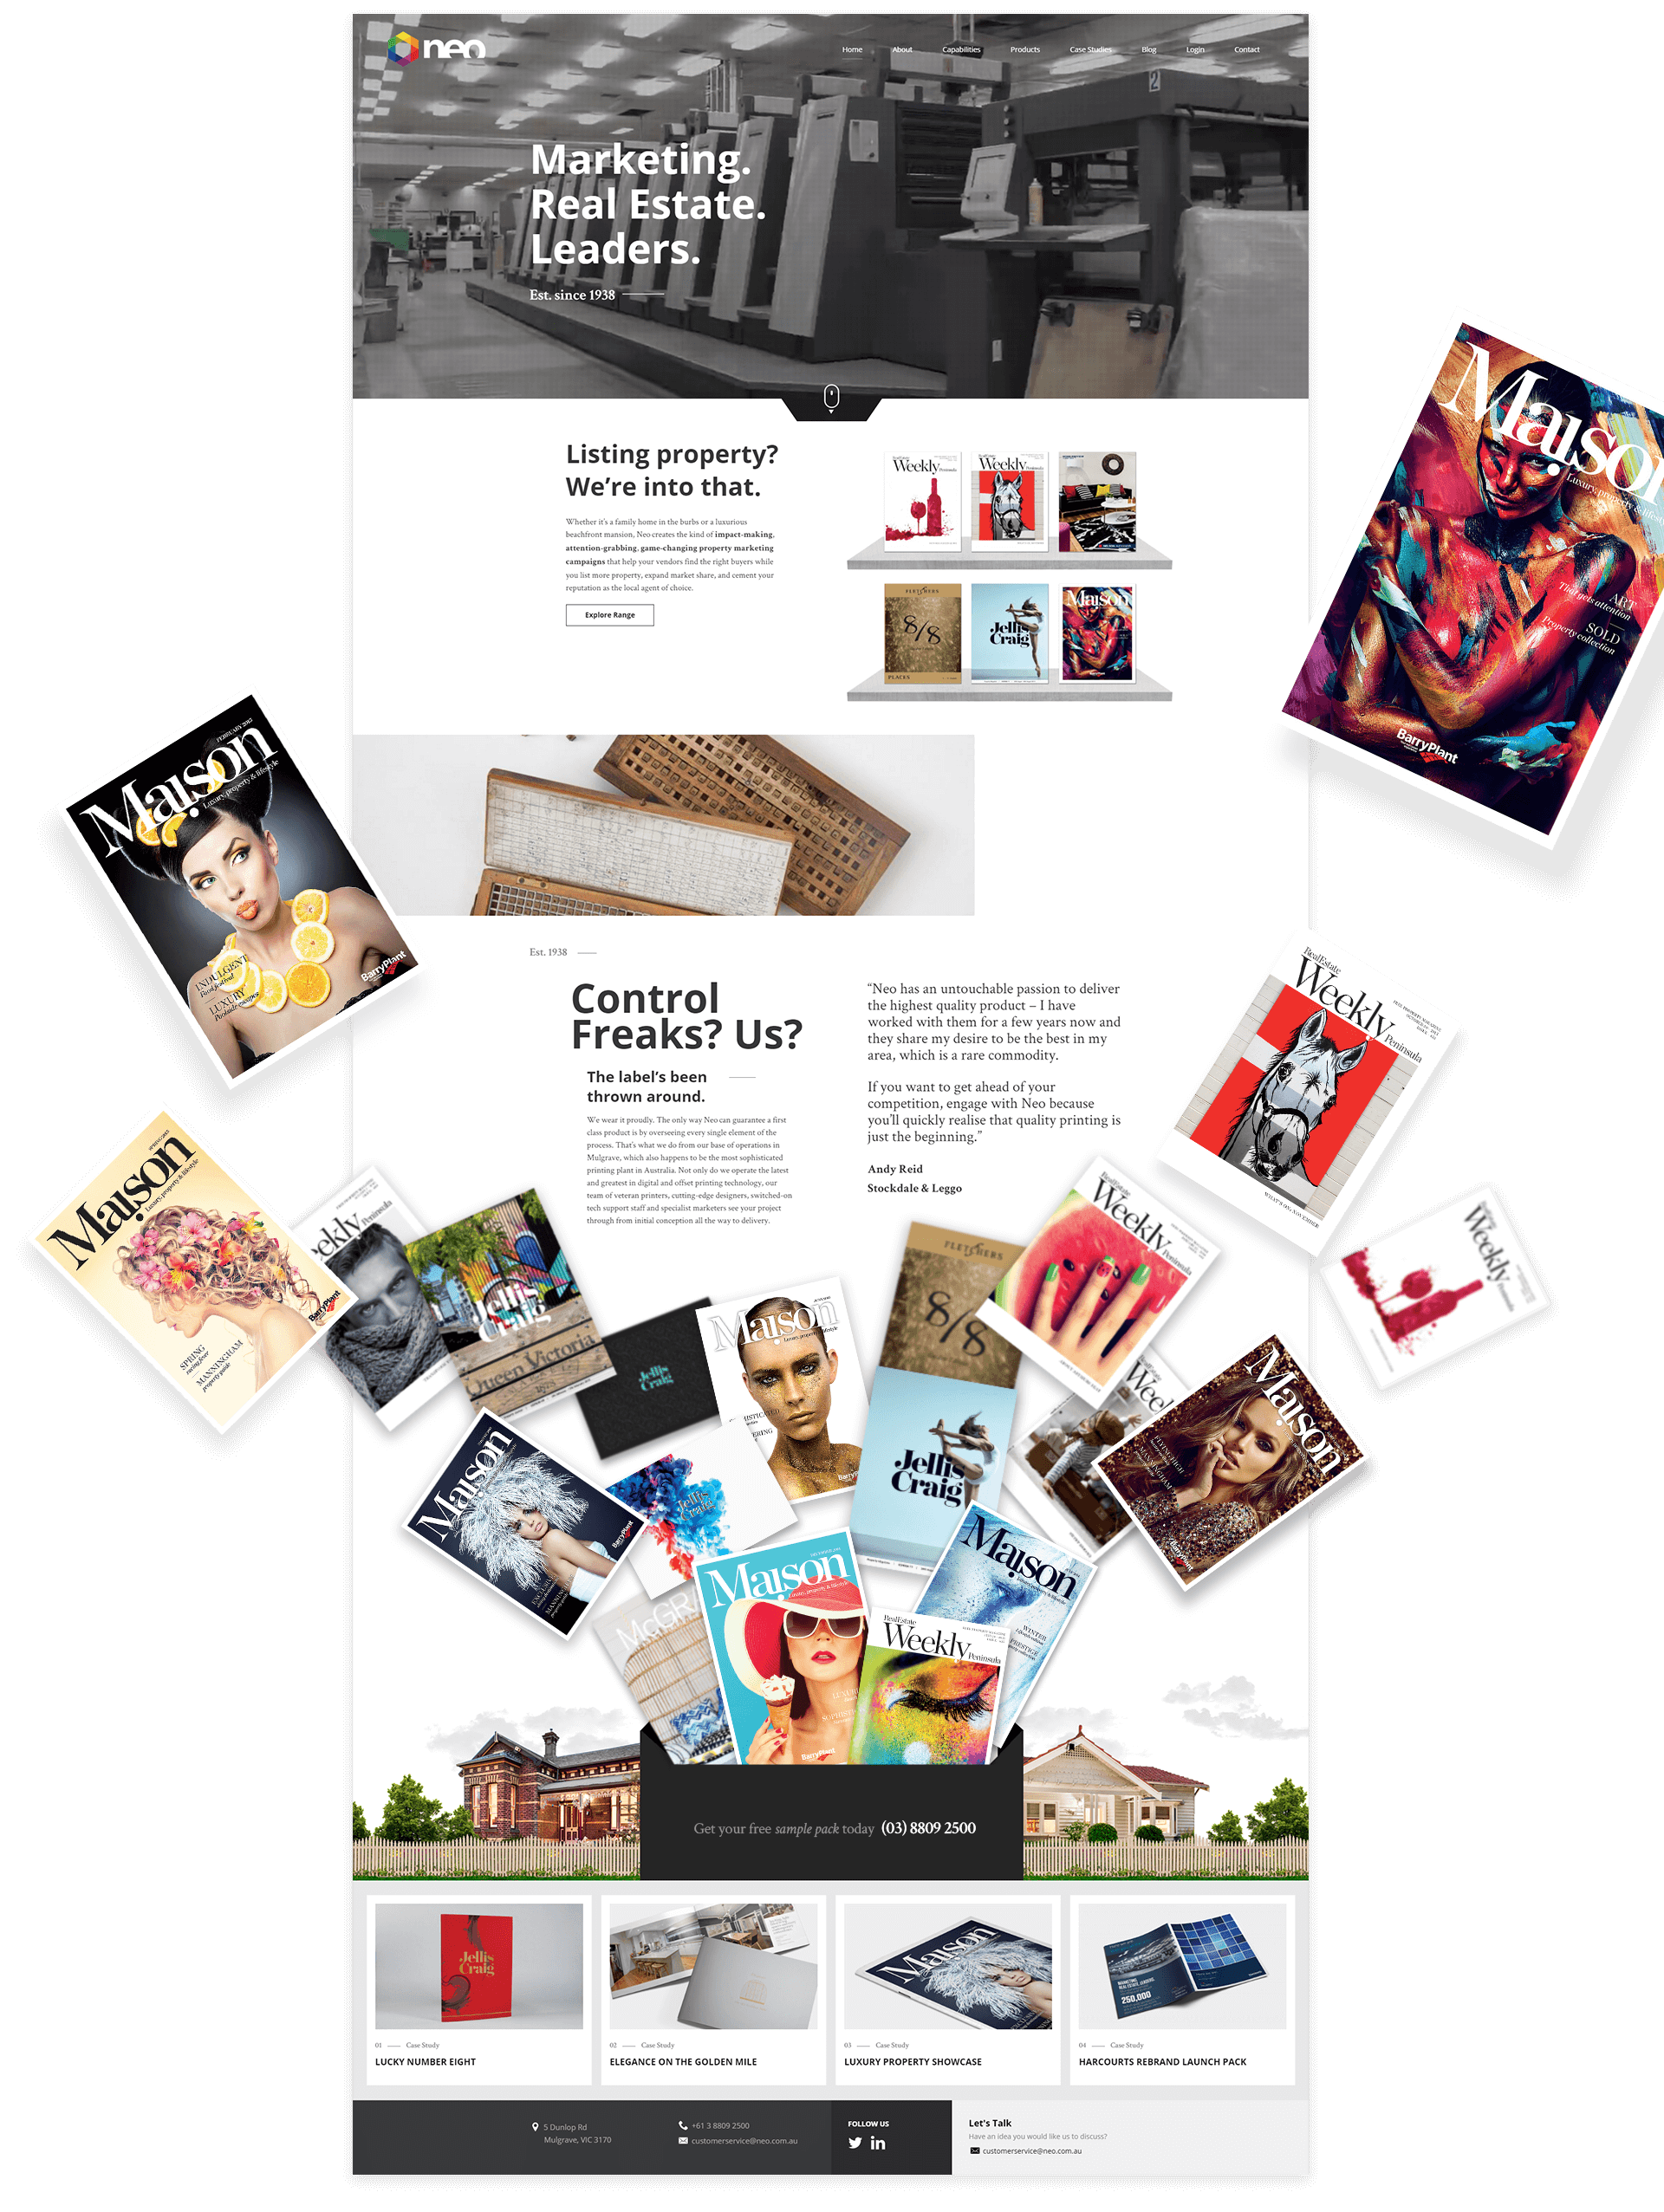 Design style of the website with different magazine cover and pages